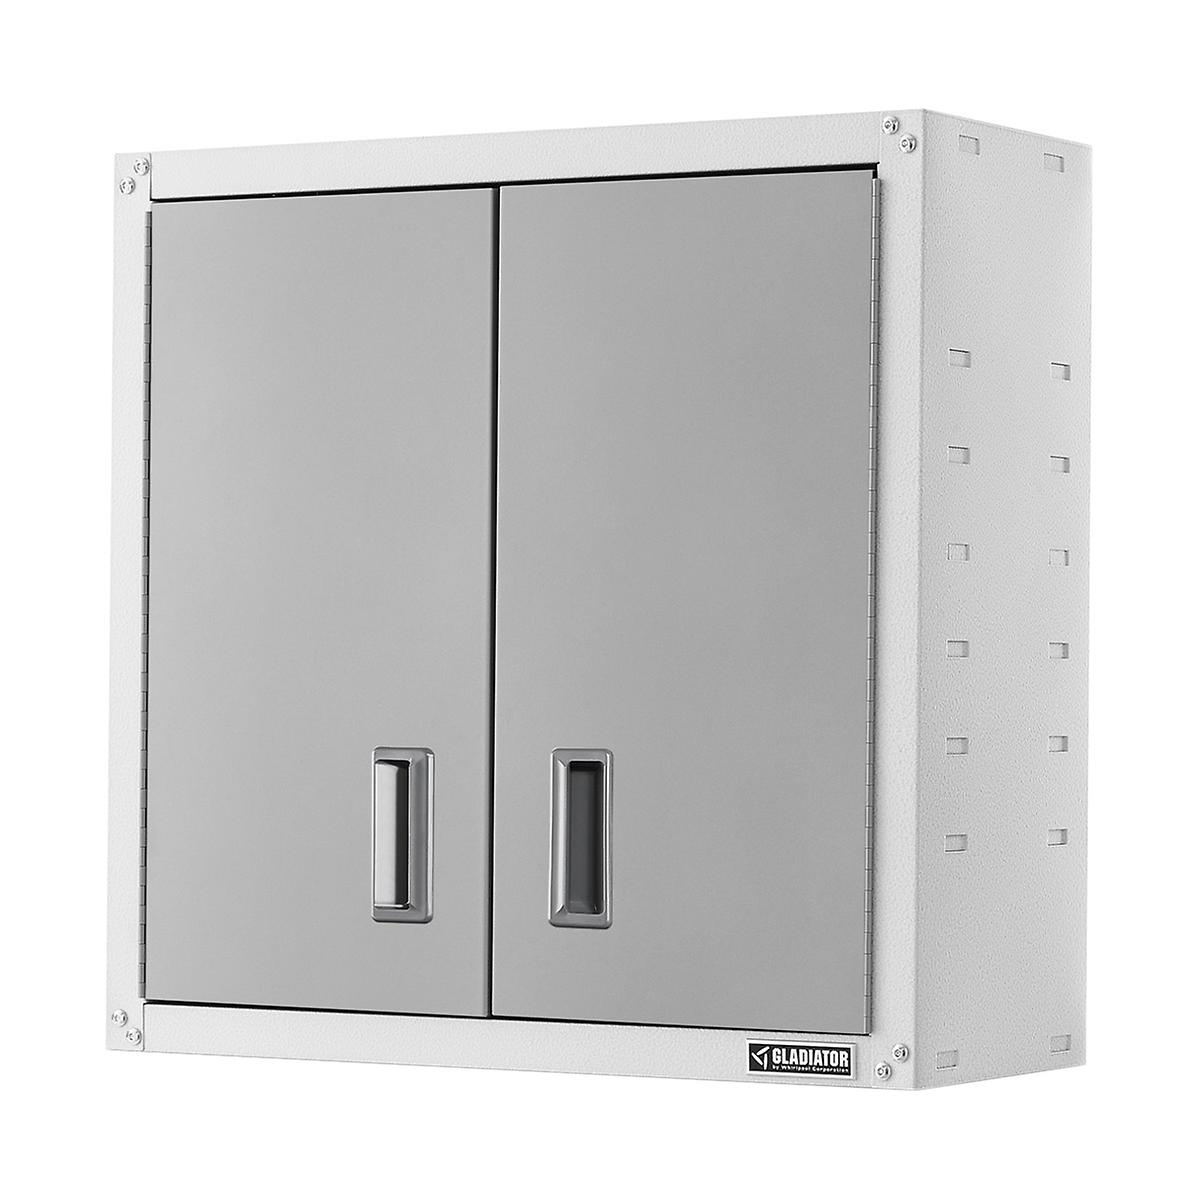 Gladiator White Full-Door Wall-Mounted GearBox